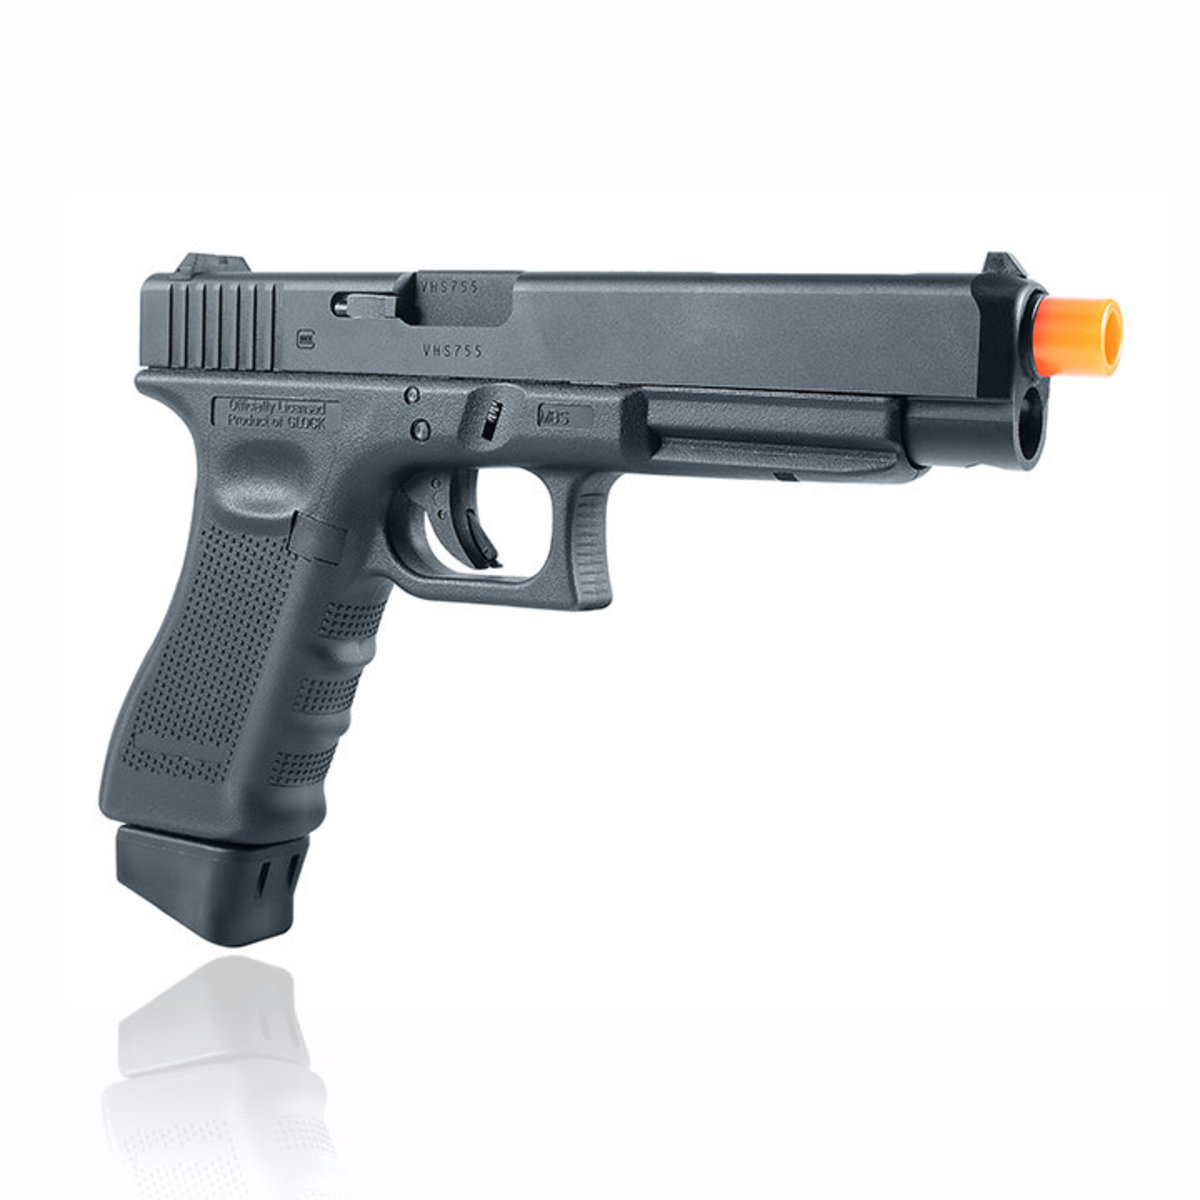 View larger image of Umarex GLOCK 34 Gen4 Deluxe CO2 Blowback Airsoft Pistol (VFC)